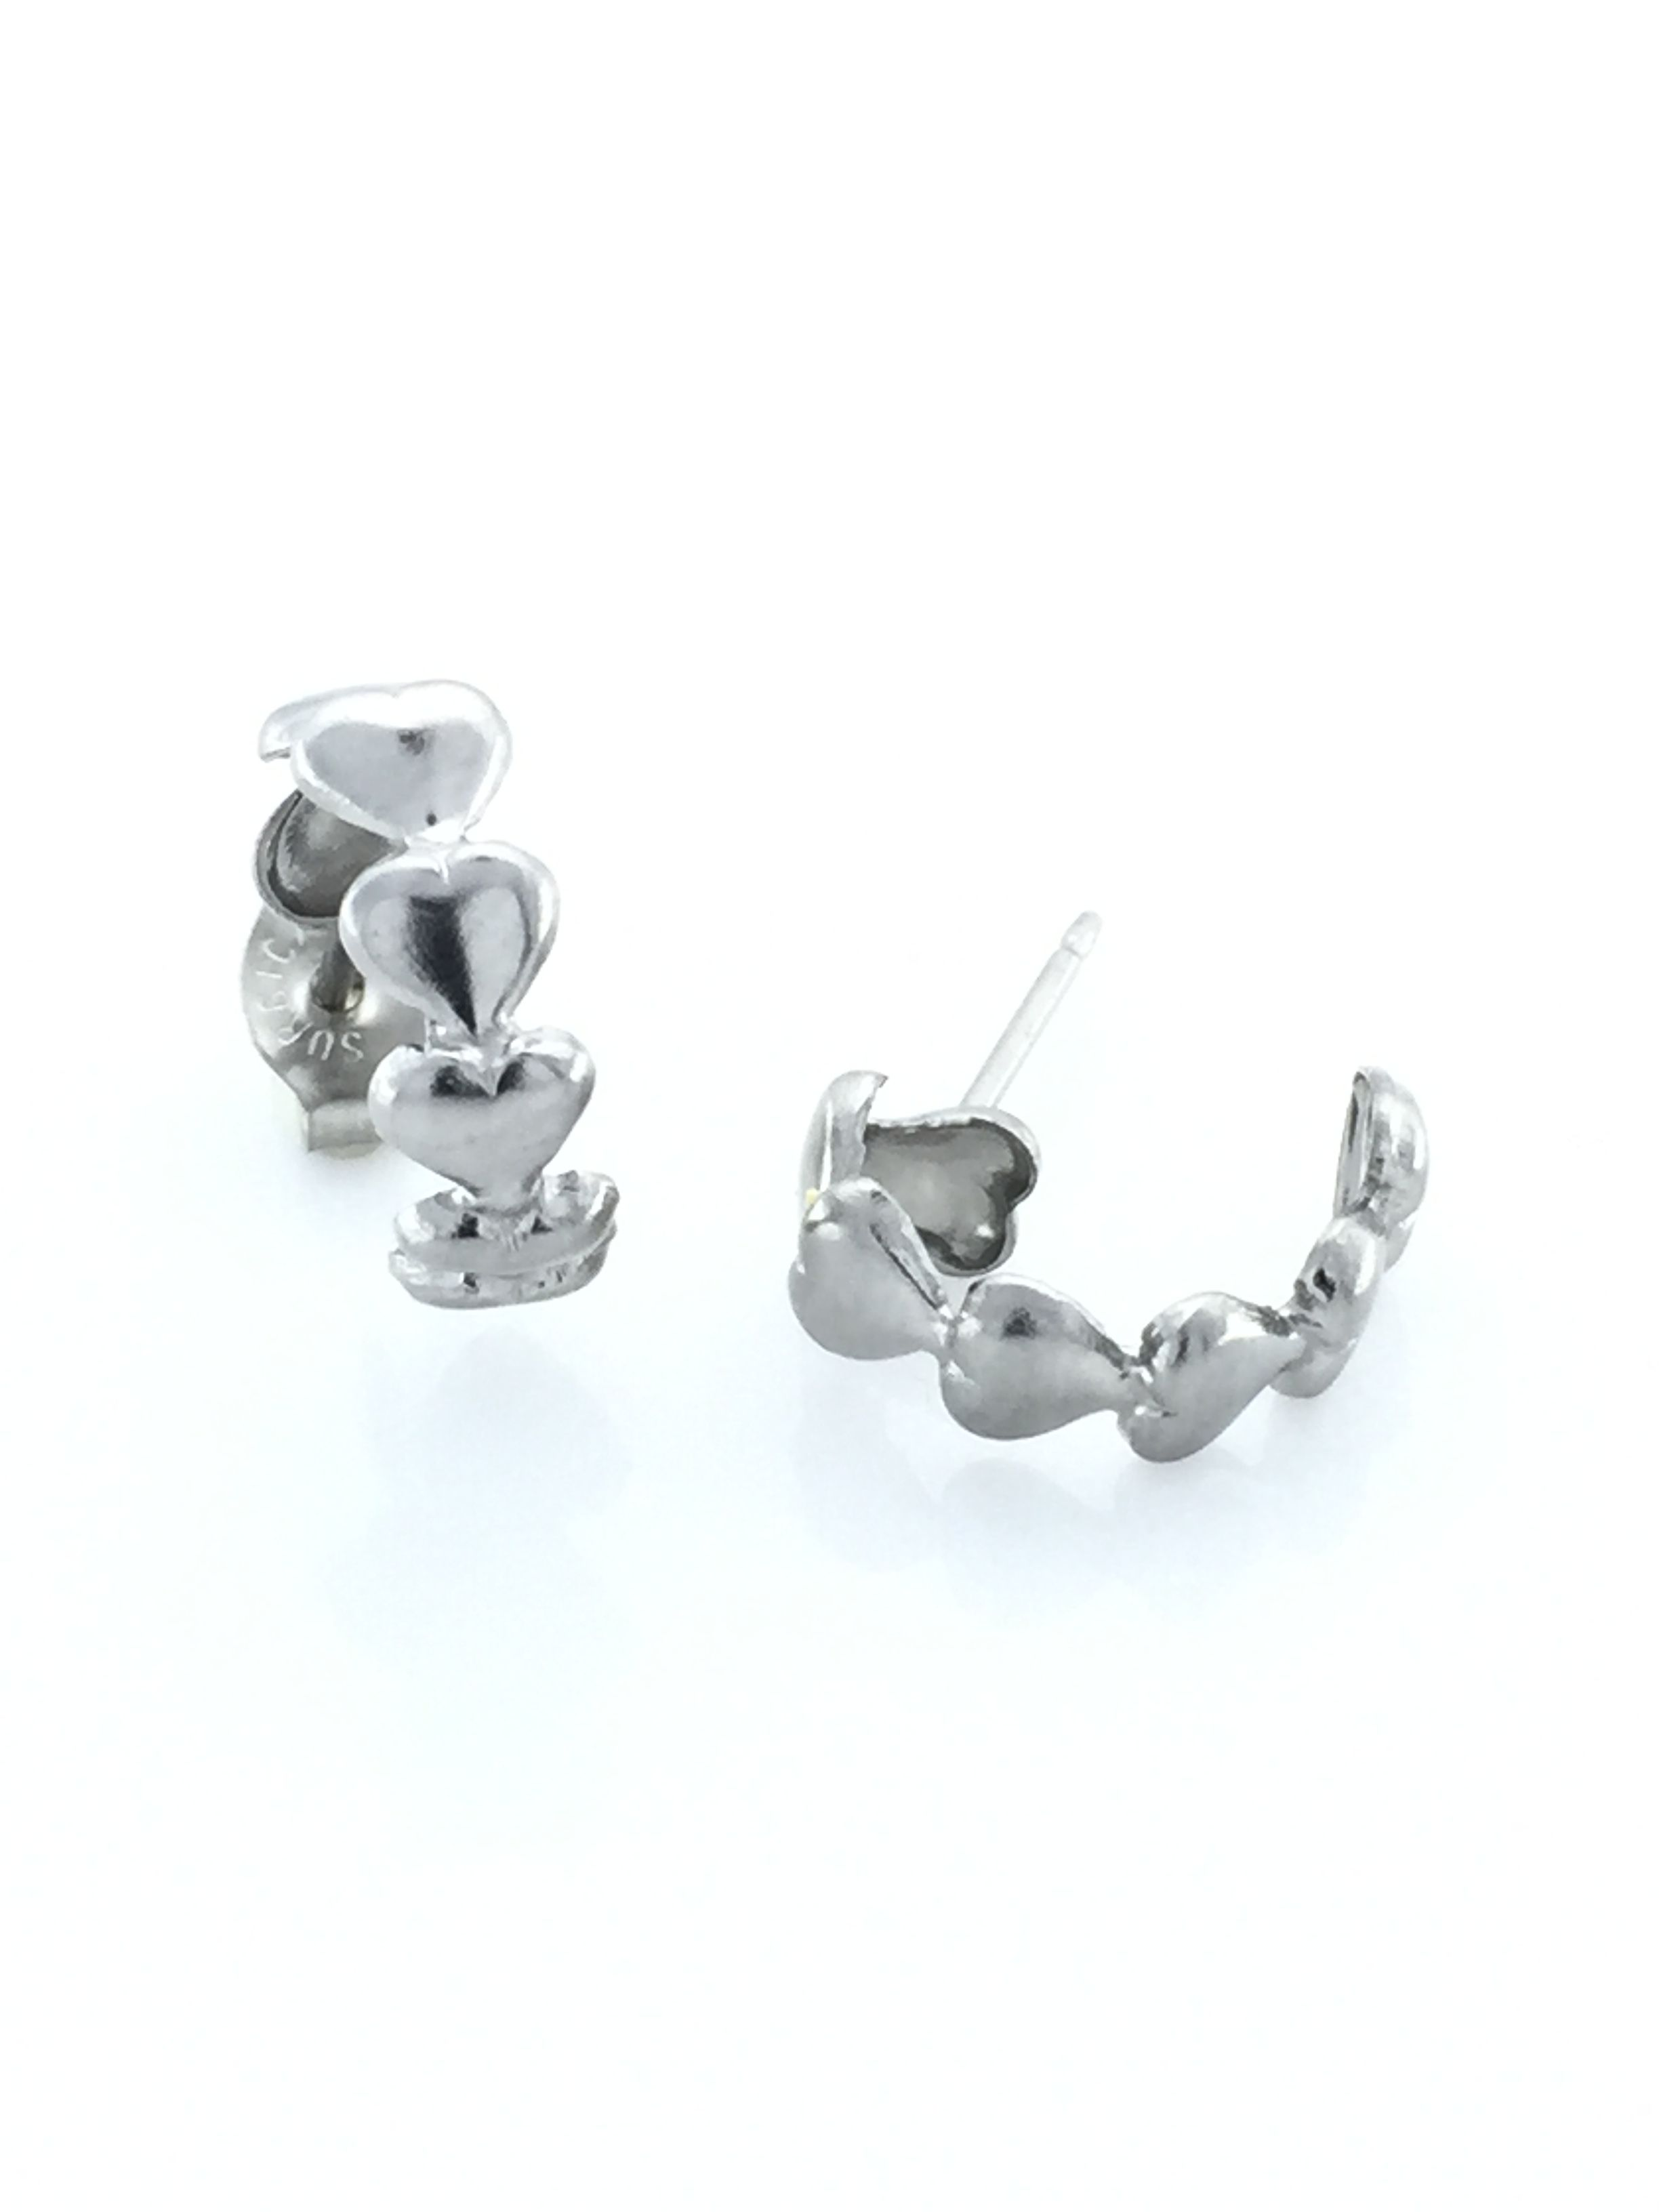 Surgical Steel Earrings Sensitively Yours Pinterest Heart